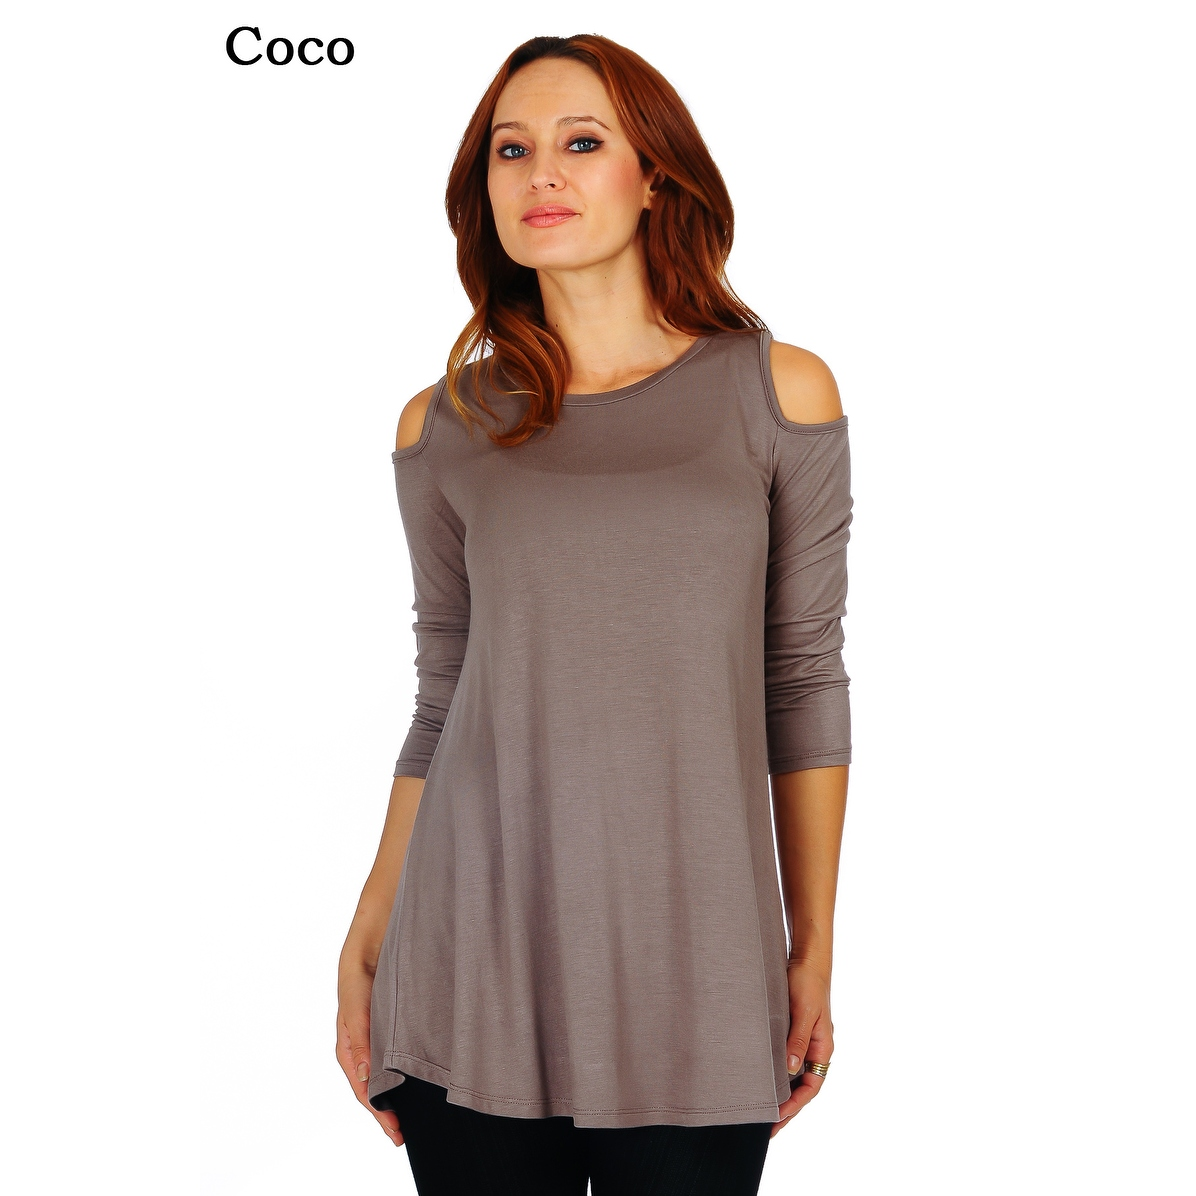 Wine Stained Blouse Discount Code